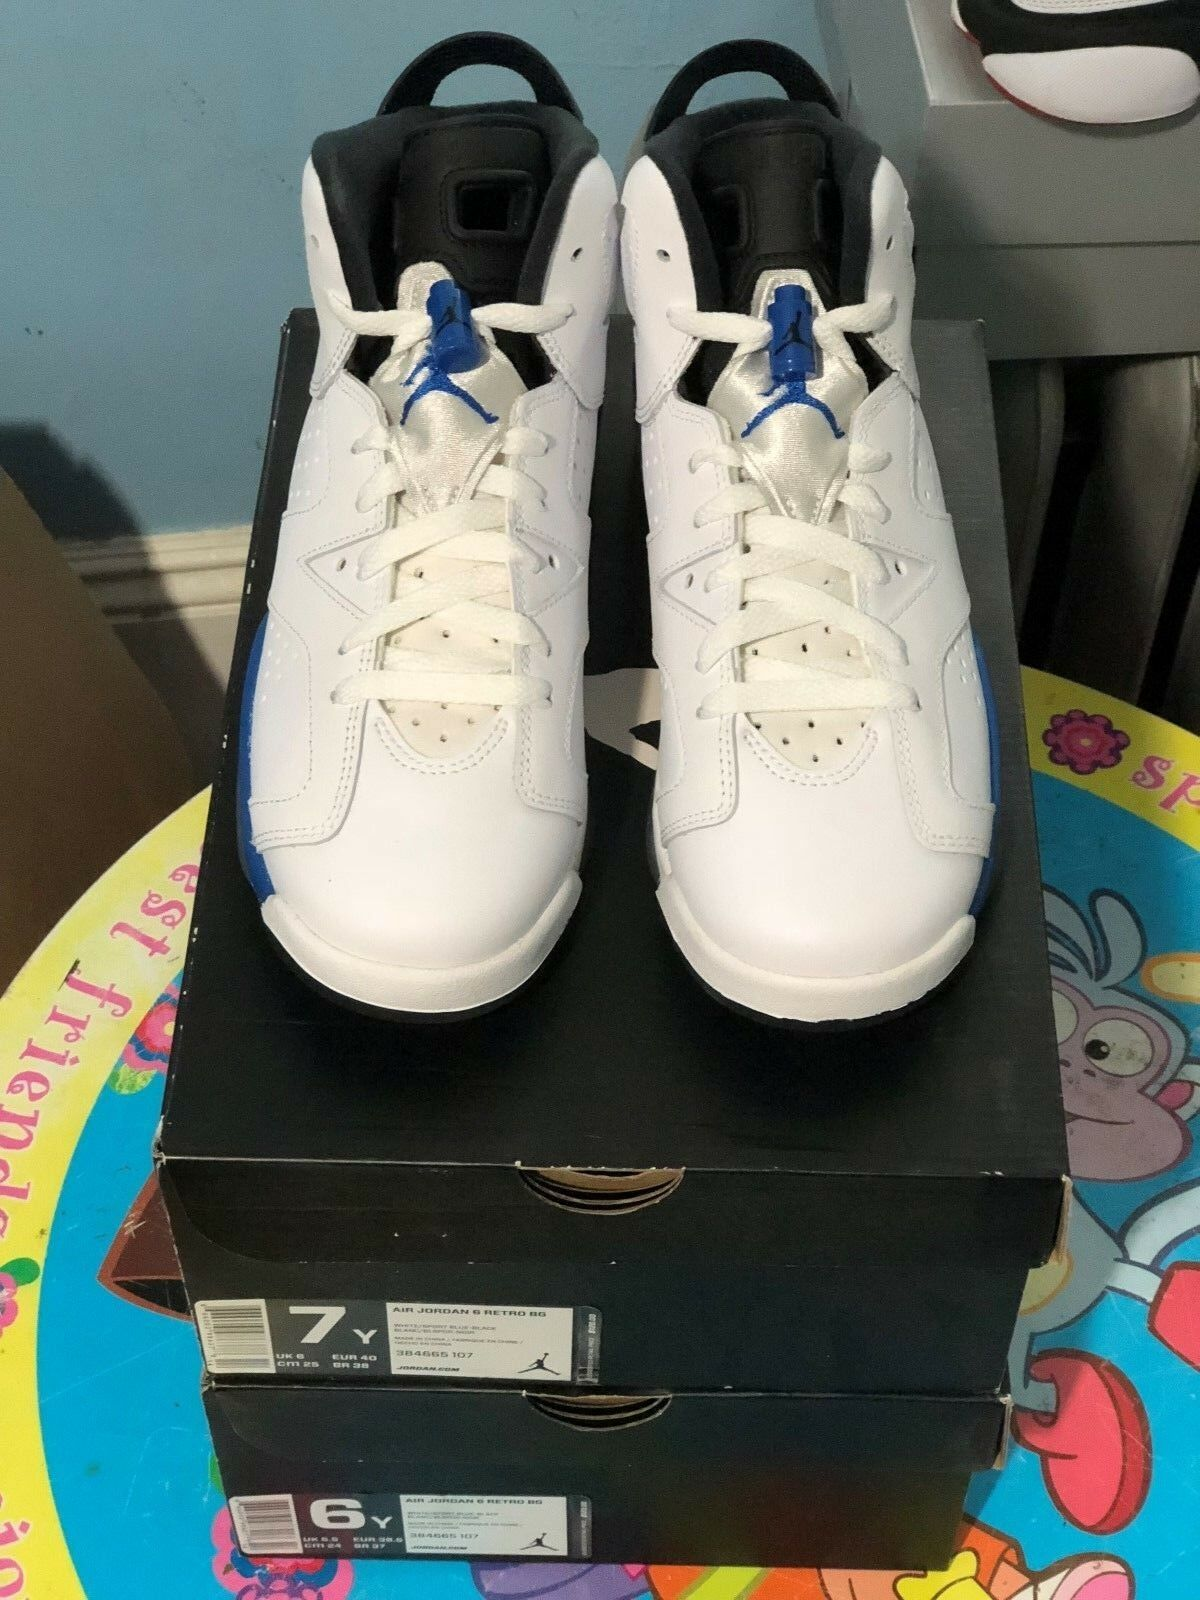 New Air Jordan 6 Retro BG White Sport bluee Black 384665 107 Youth sizes 6 & 7Y